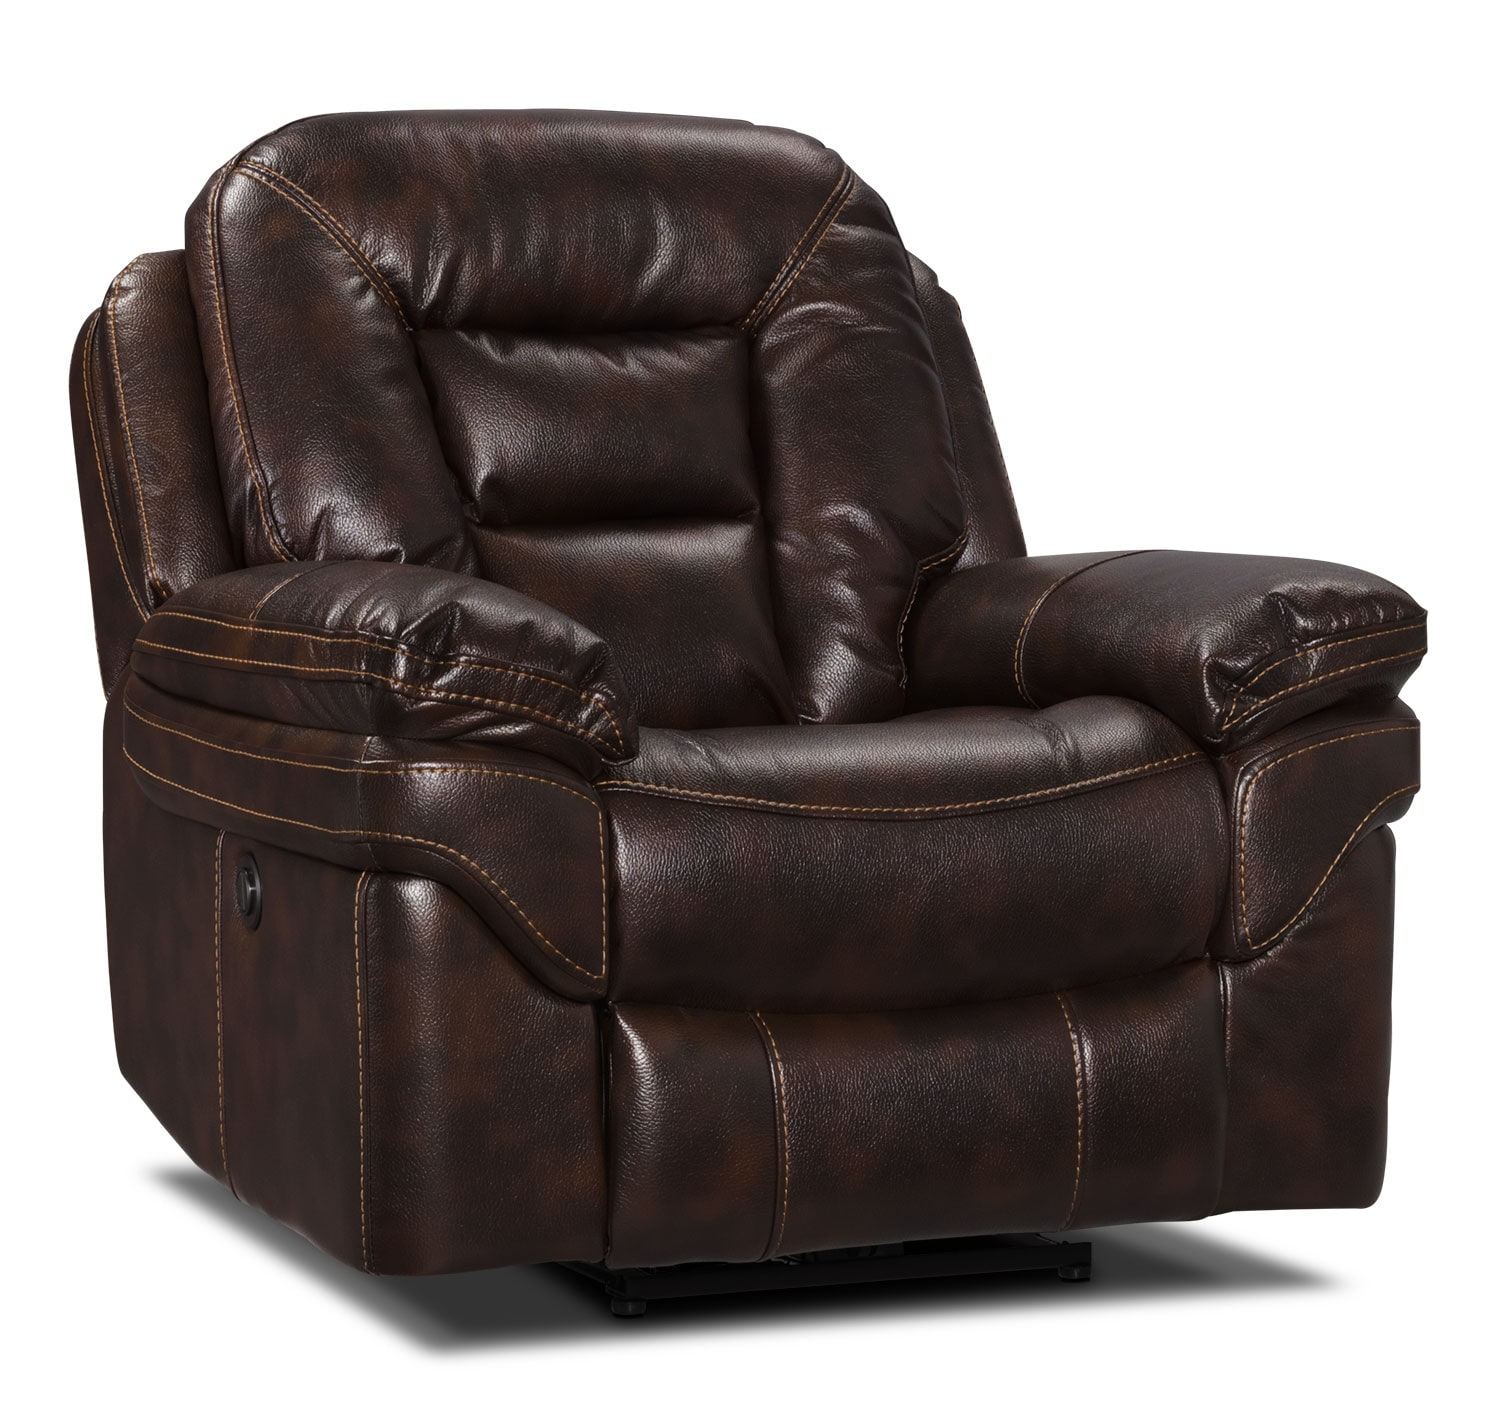 Power Reclining Chairs Leo Leath Aire Fabric Power Reclining Chair Walnut